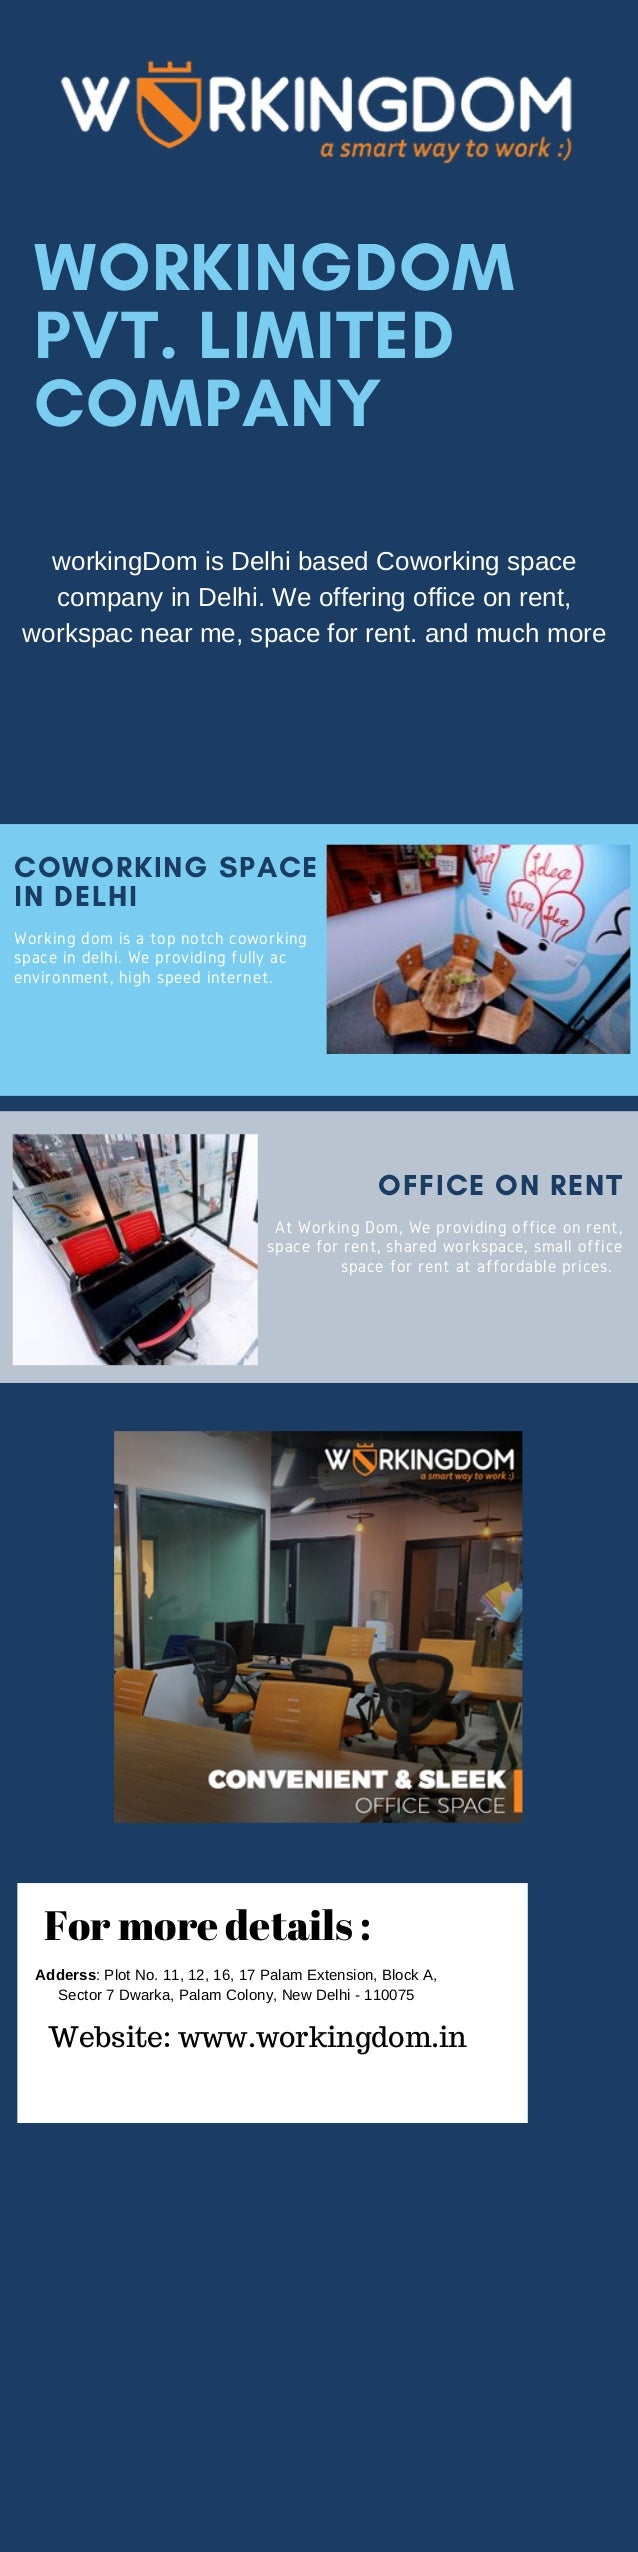 Workspace Near Me Small Office Space For Rent Coworking In Dwarka